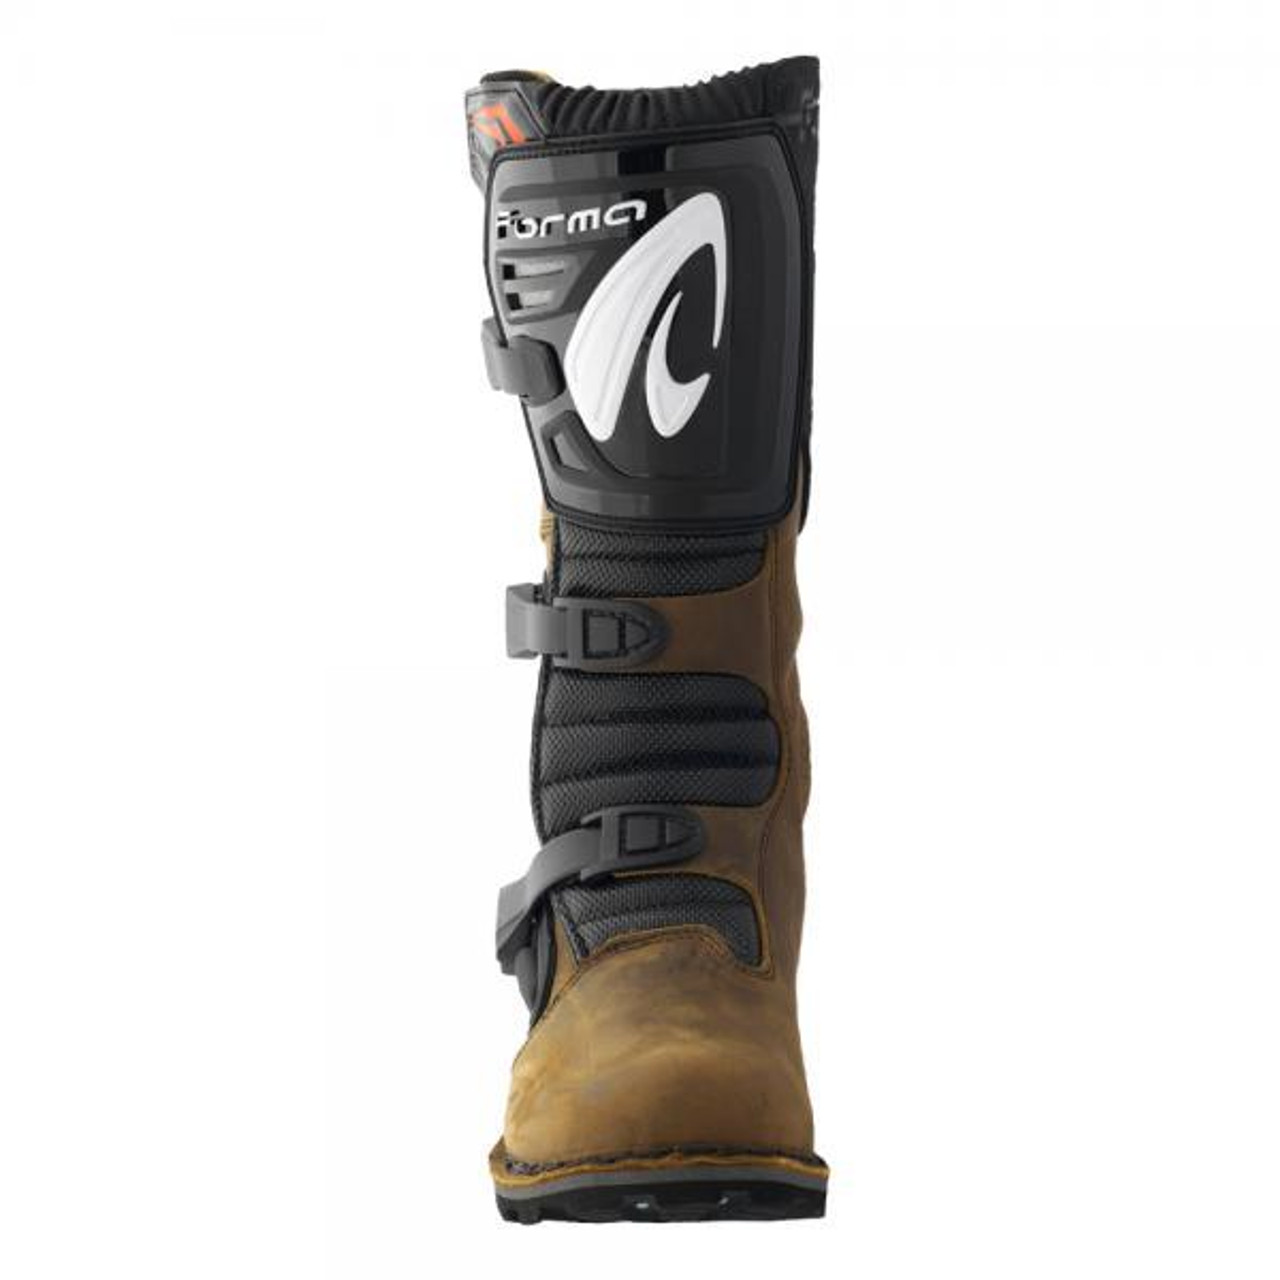 FBB BROWN Forma boots Boulder brown